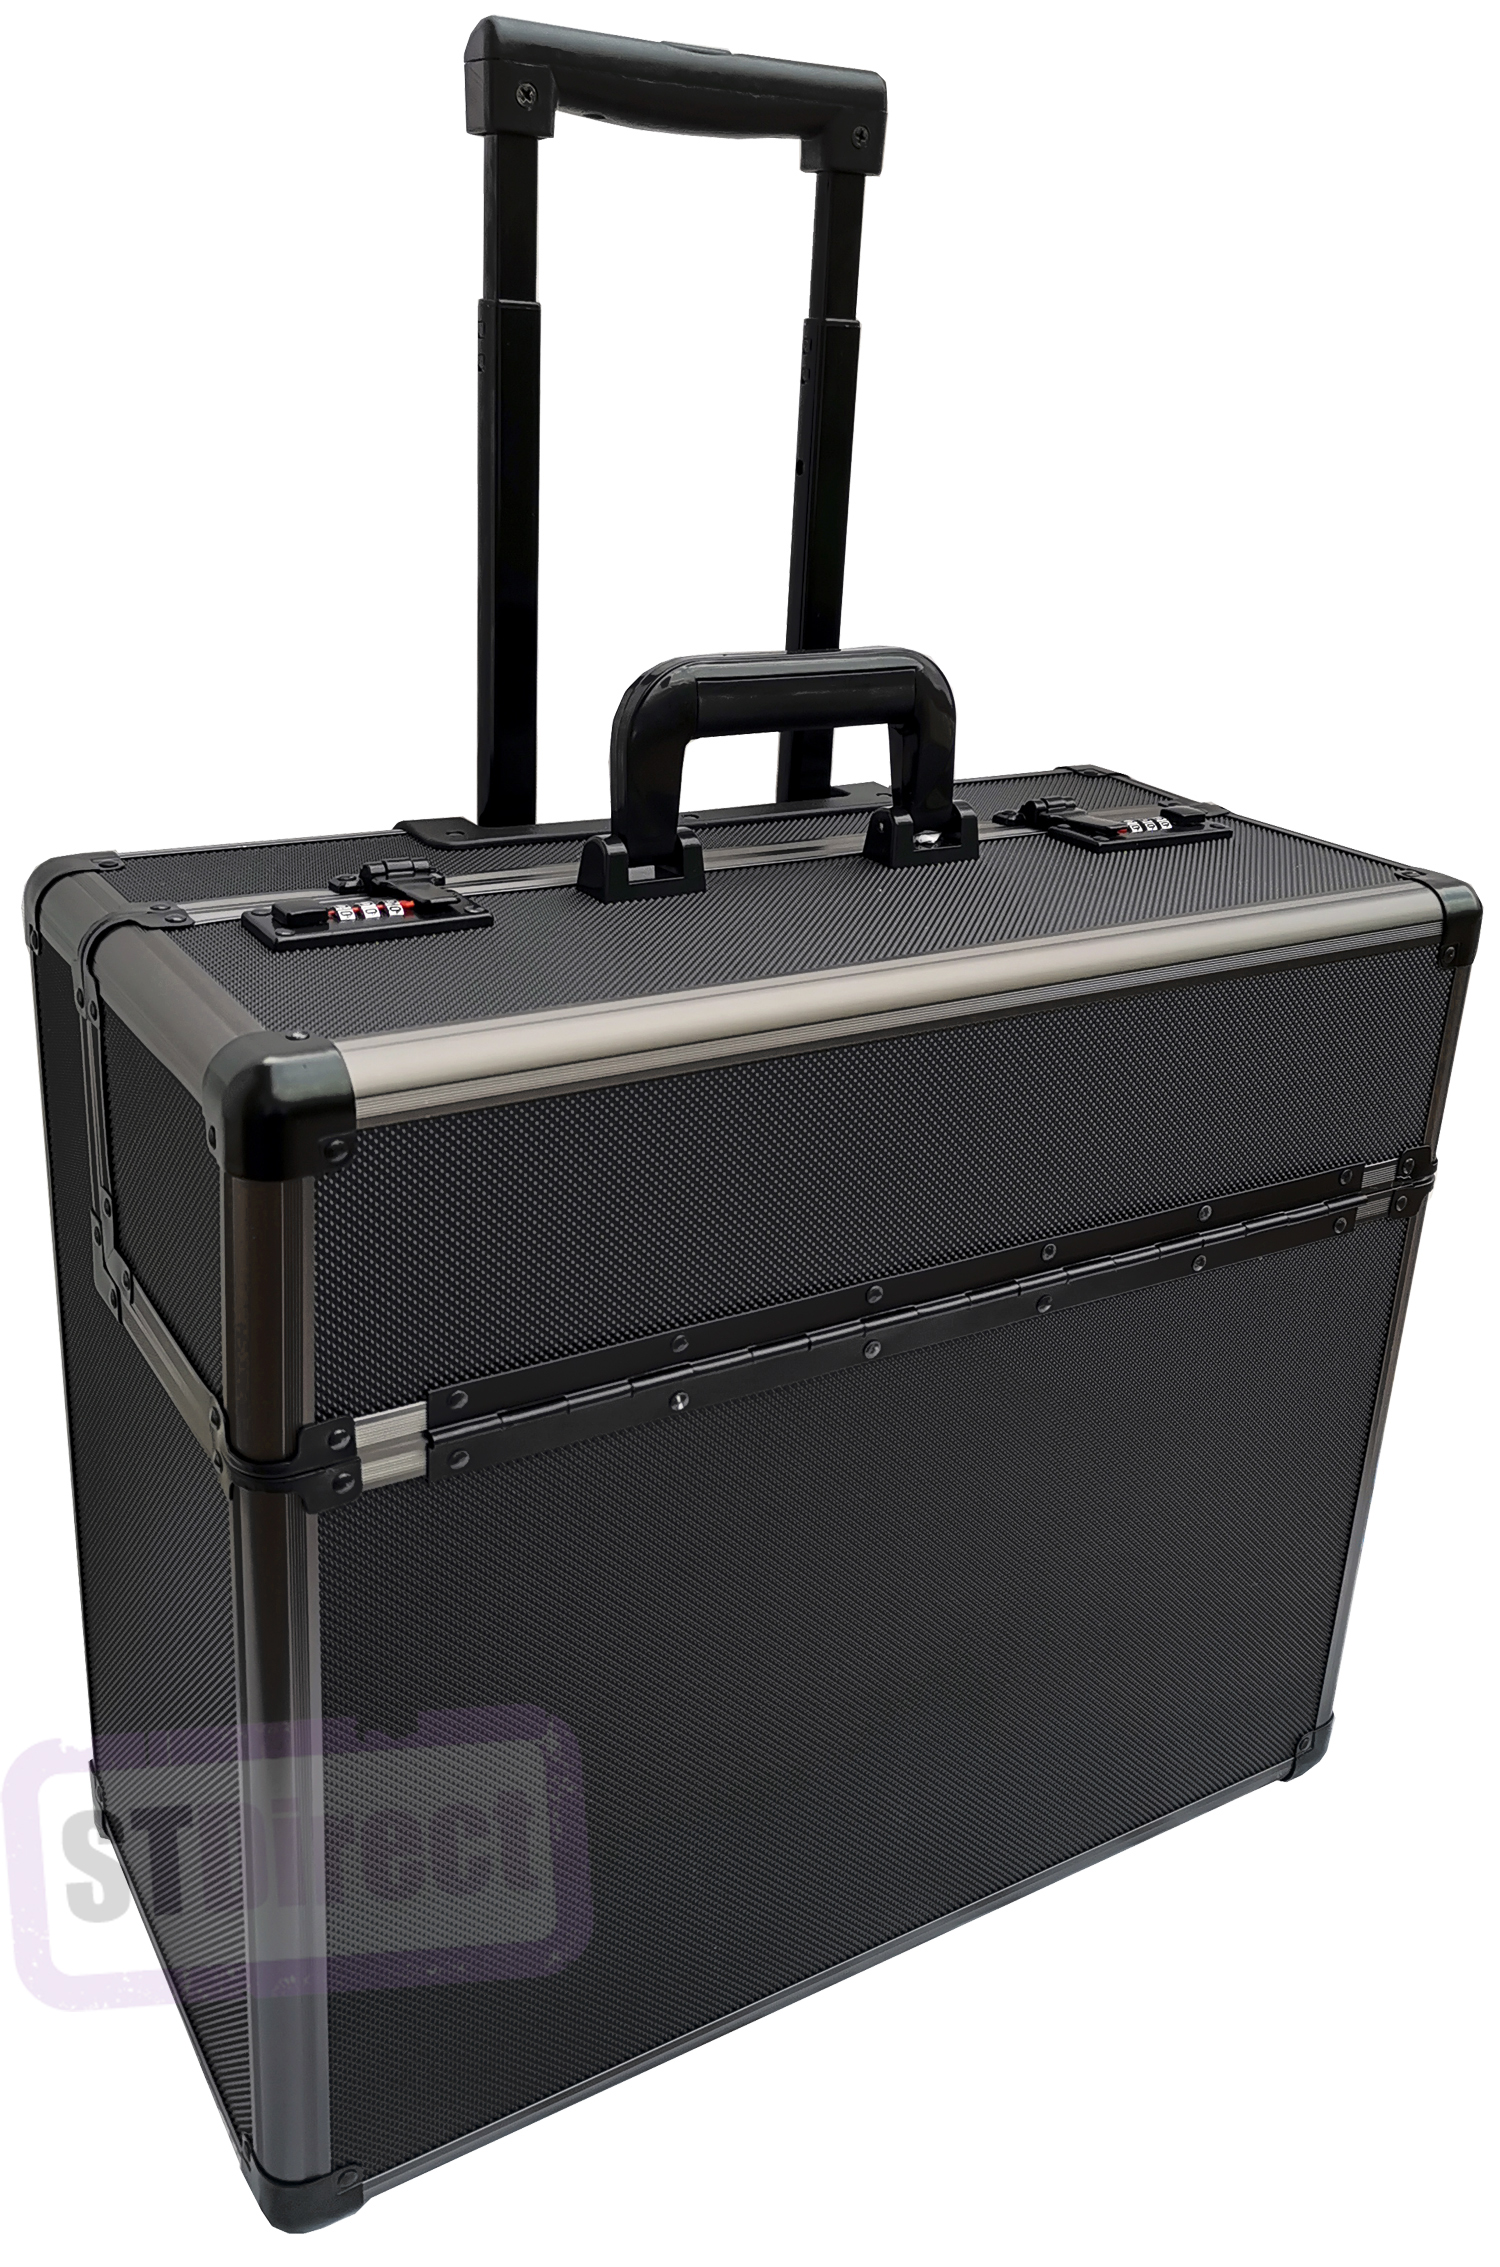 Pro XL Aluminium Wheeled Pilot Trolley Case with Strong Telescopic Handle Black / Gun Metal